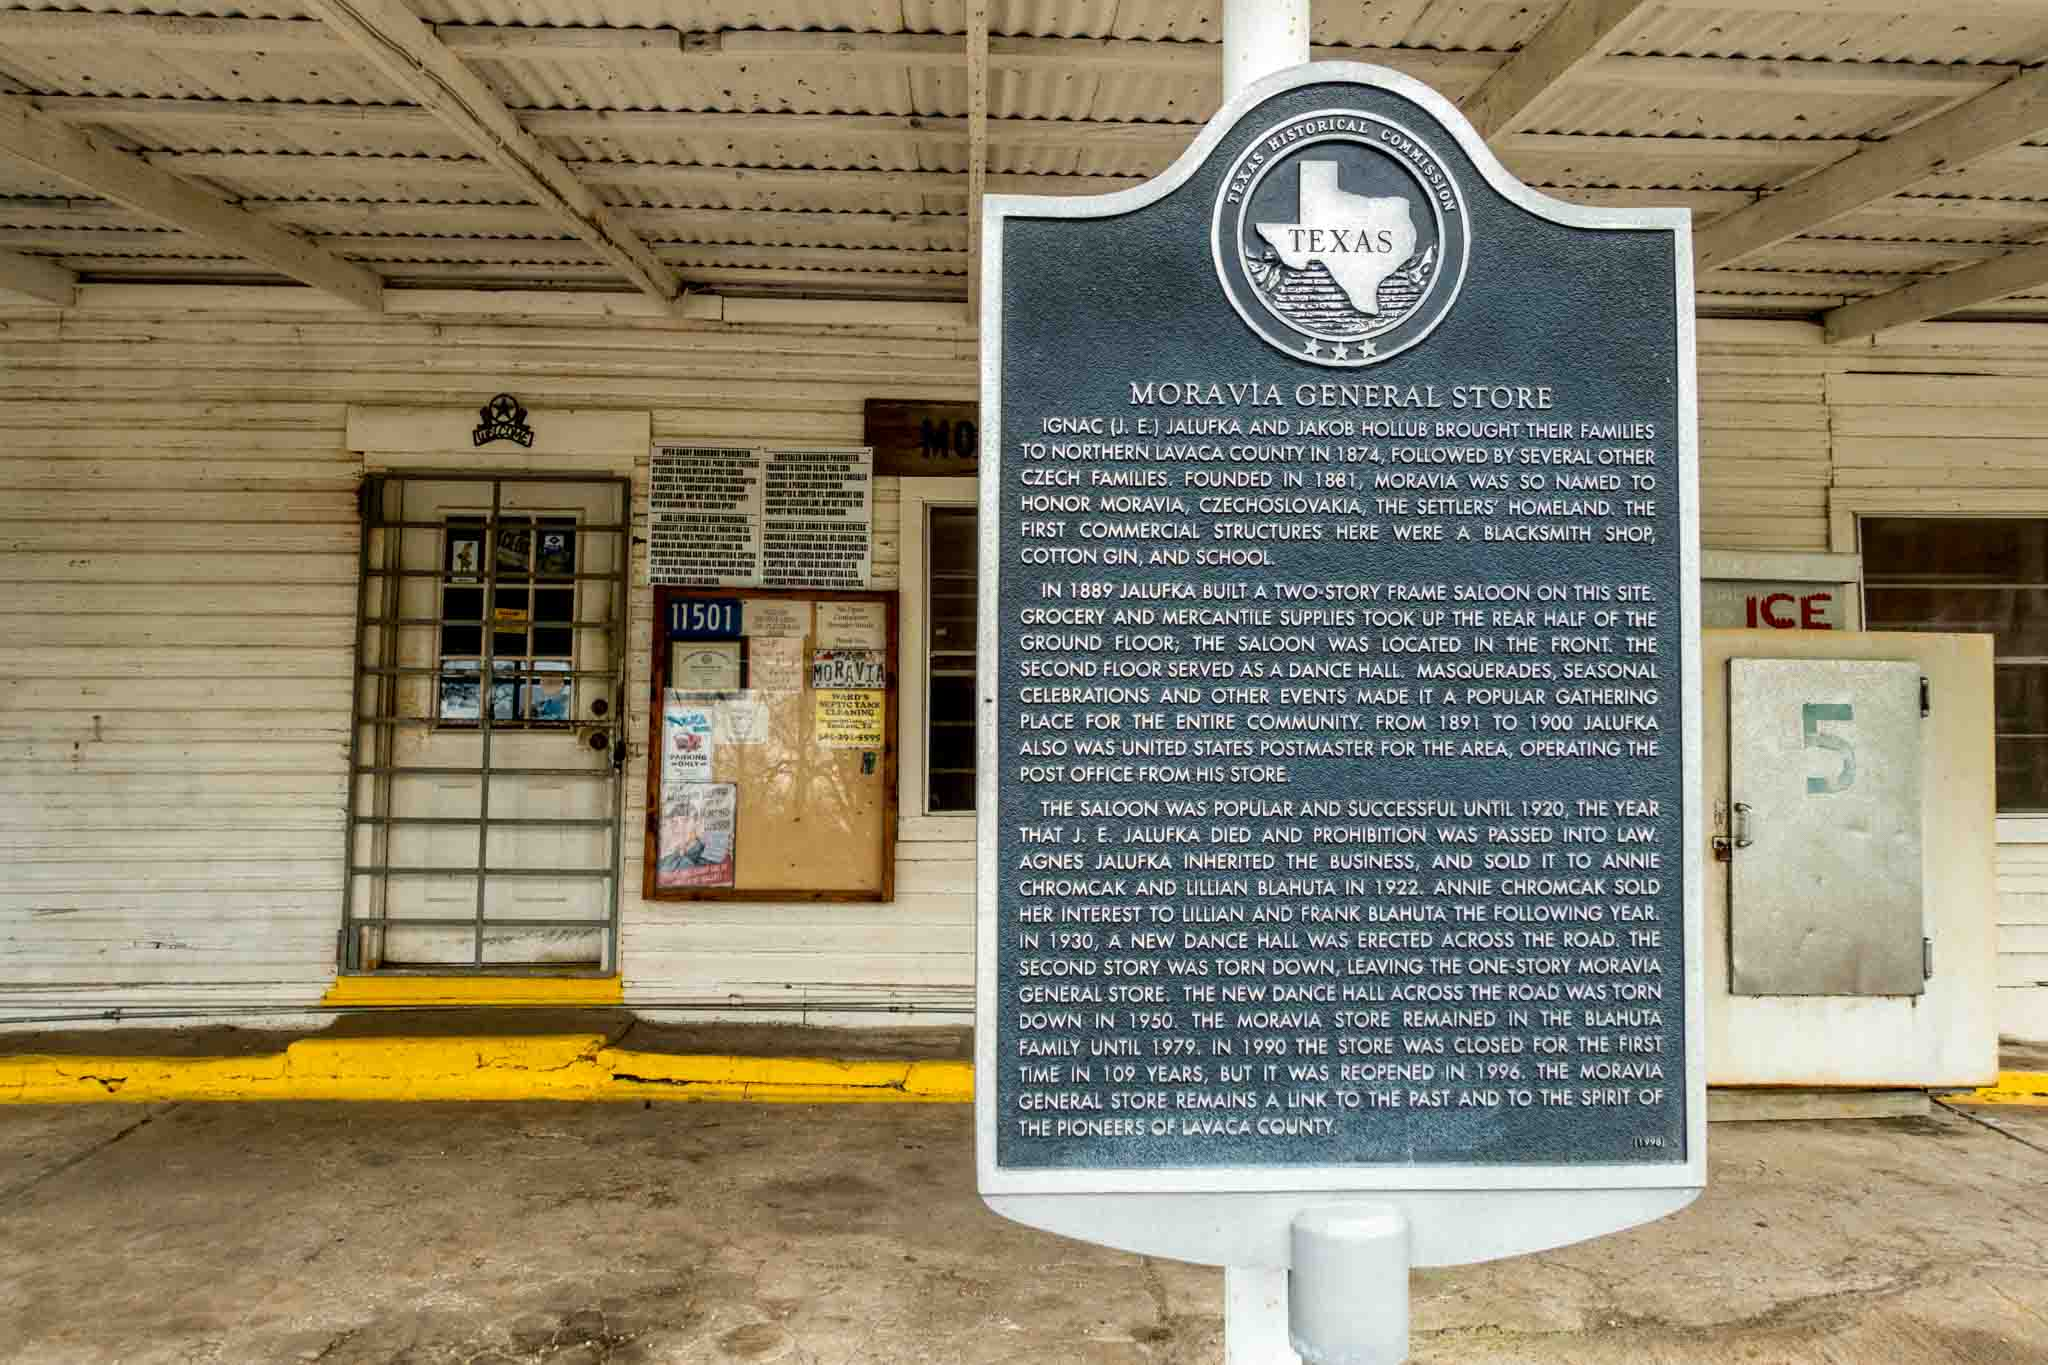 Historical marker for the Moravia, Texas, general store